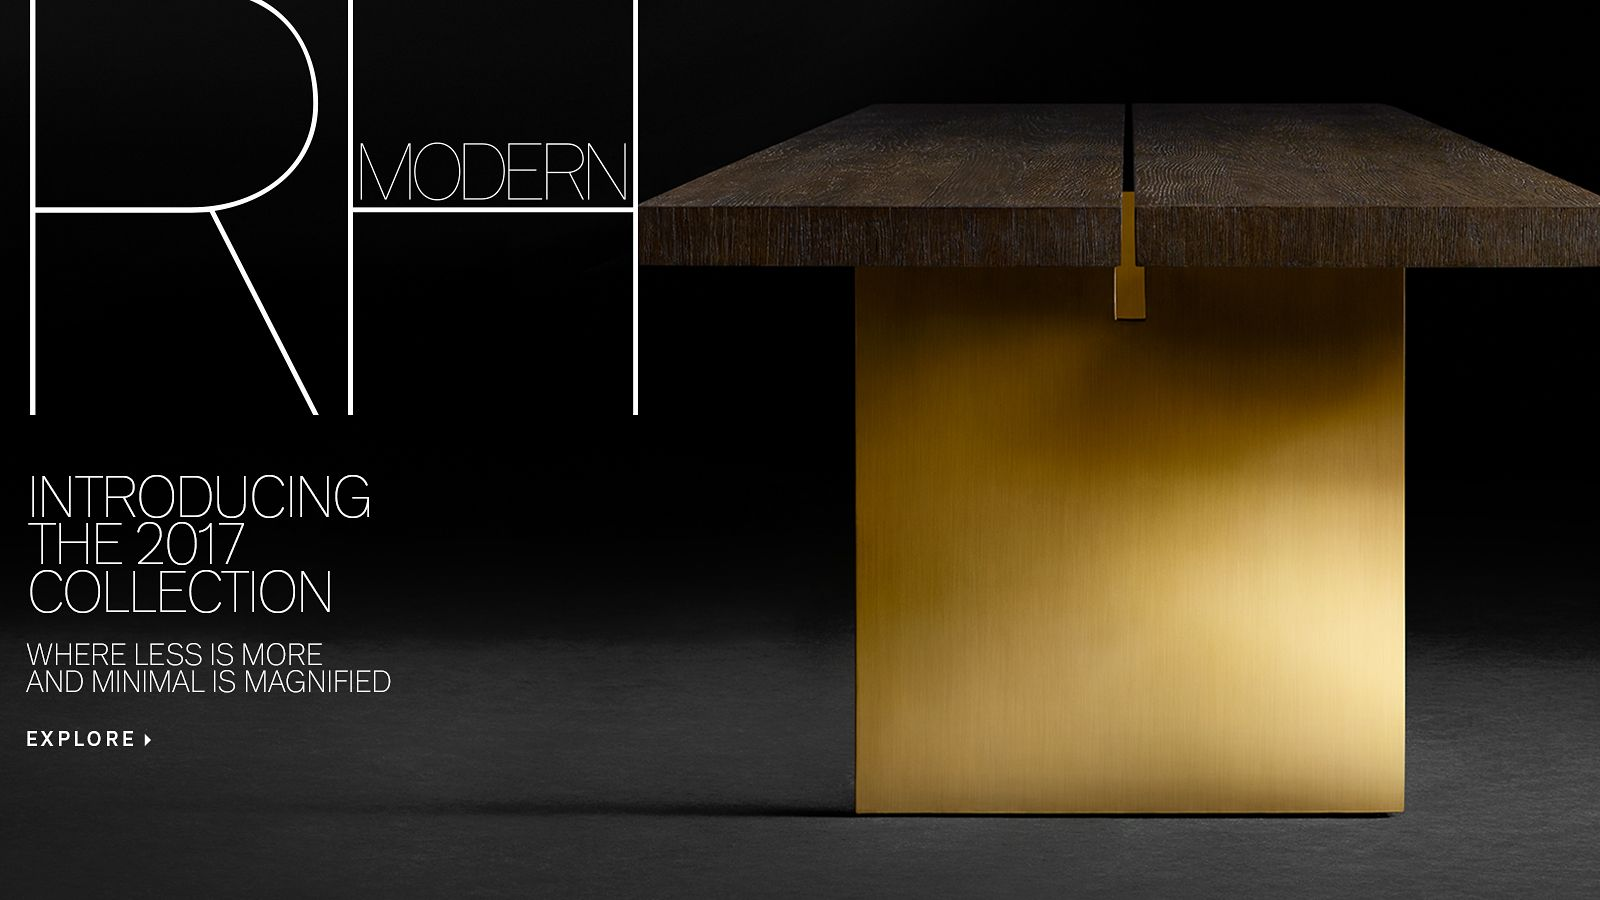 RH Modern - Introducing the 2017 Collection. Where Less Is More and Minimal Is Magnified.